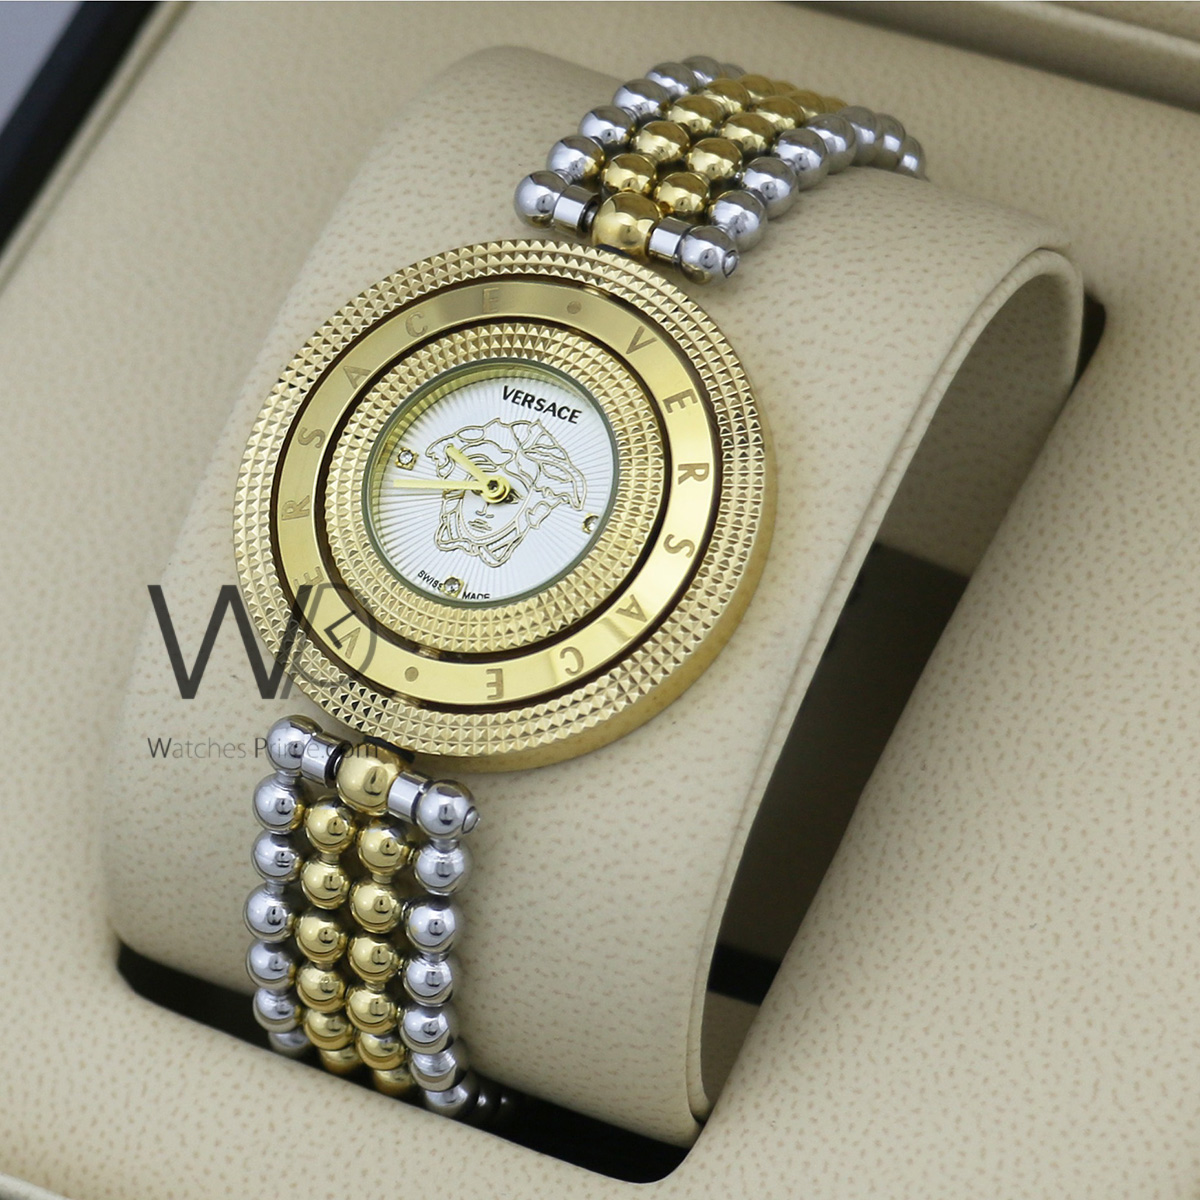 ab5853a8 versace watch white with stainless steel silver &golden belt